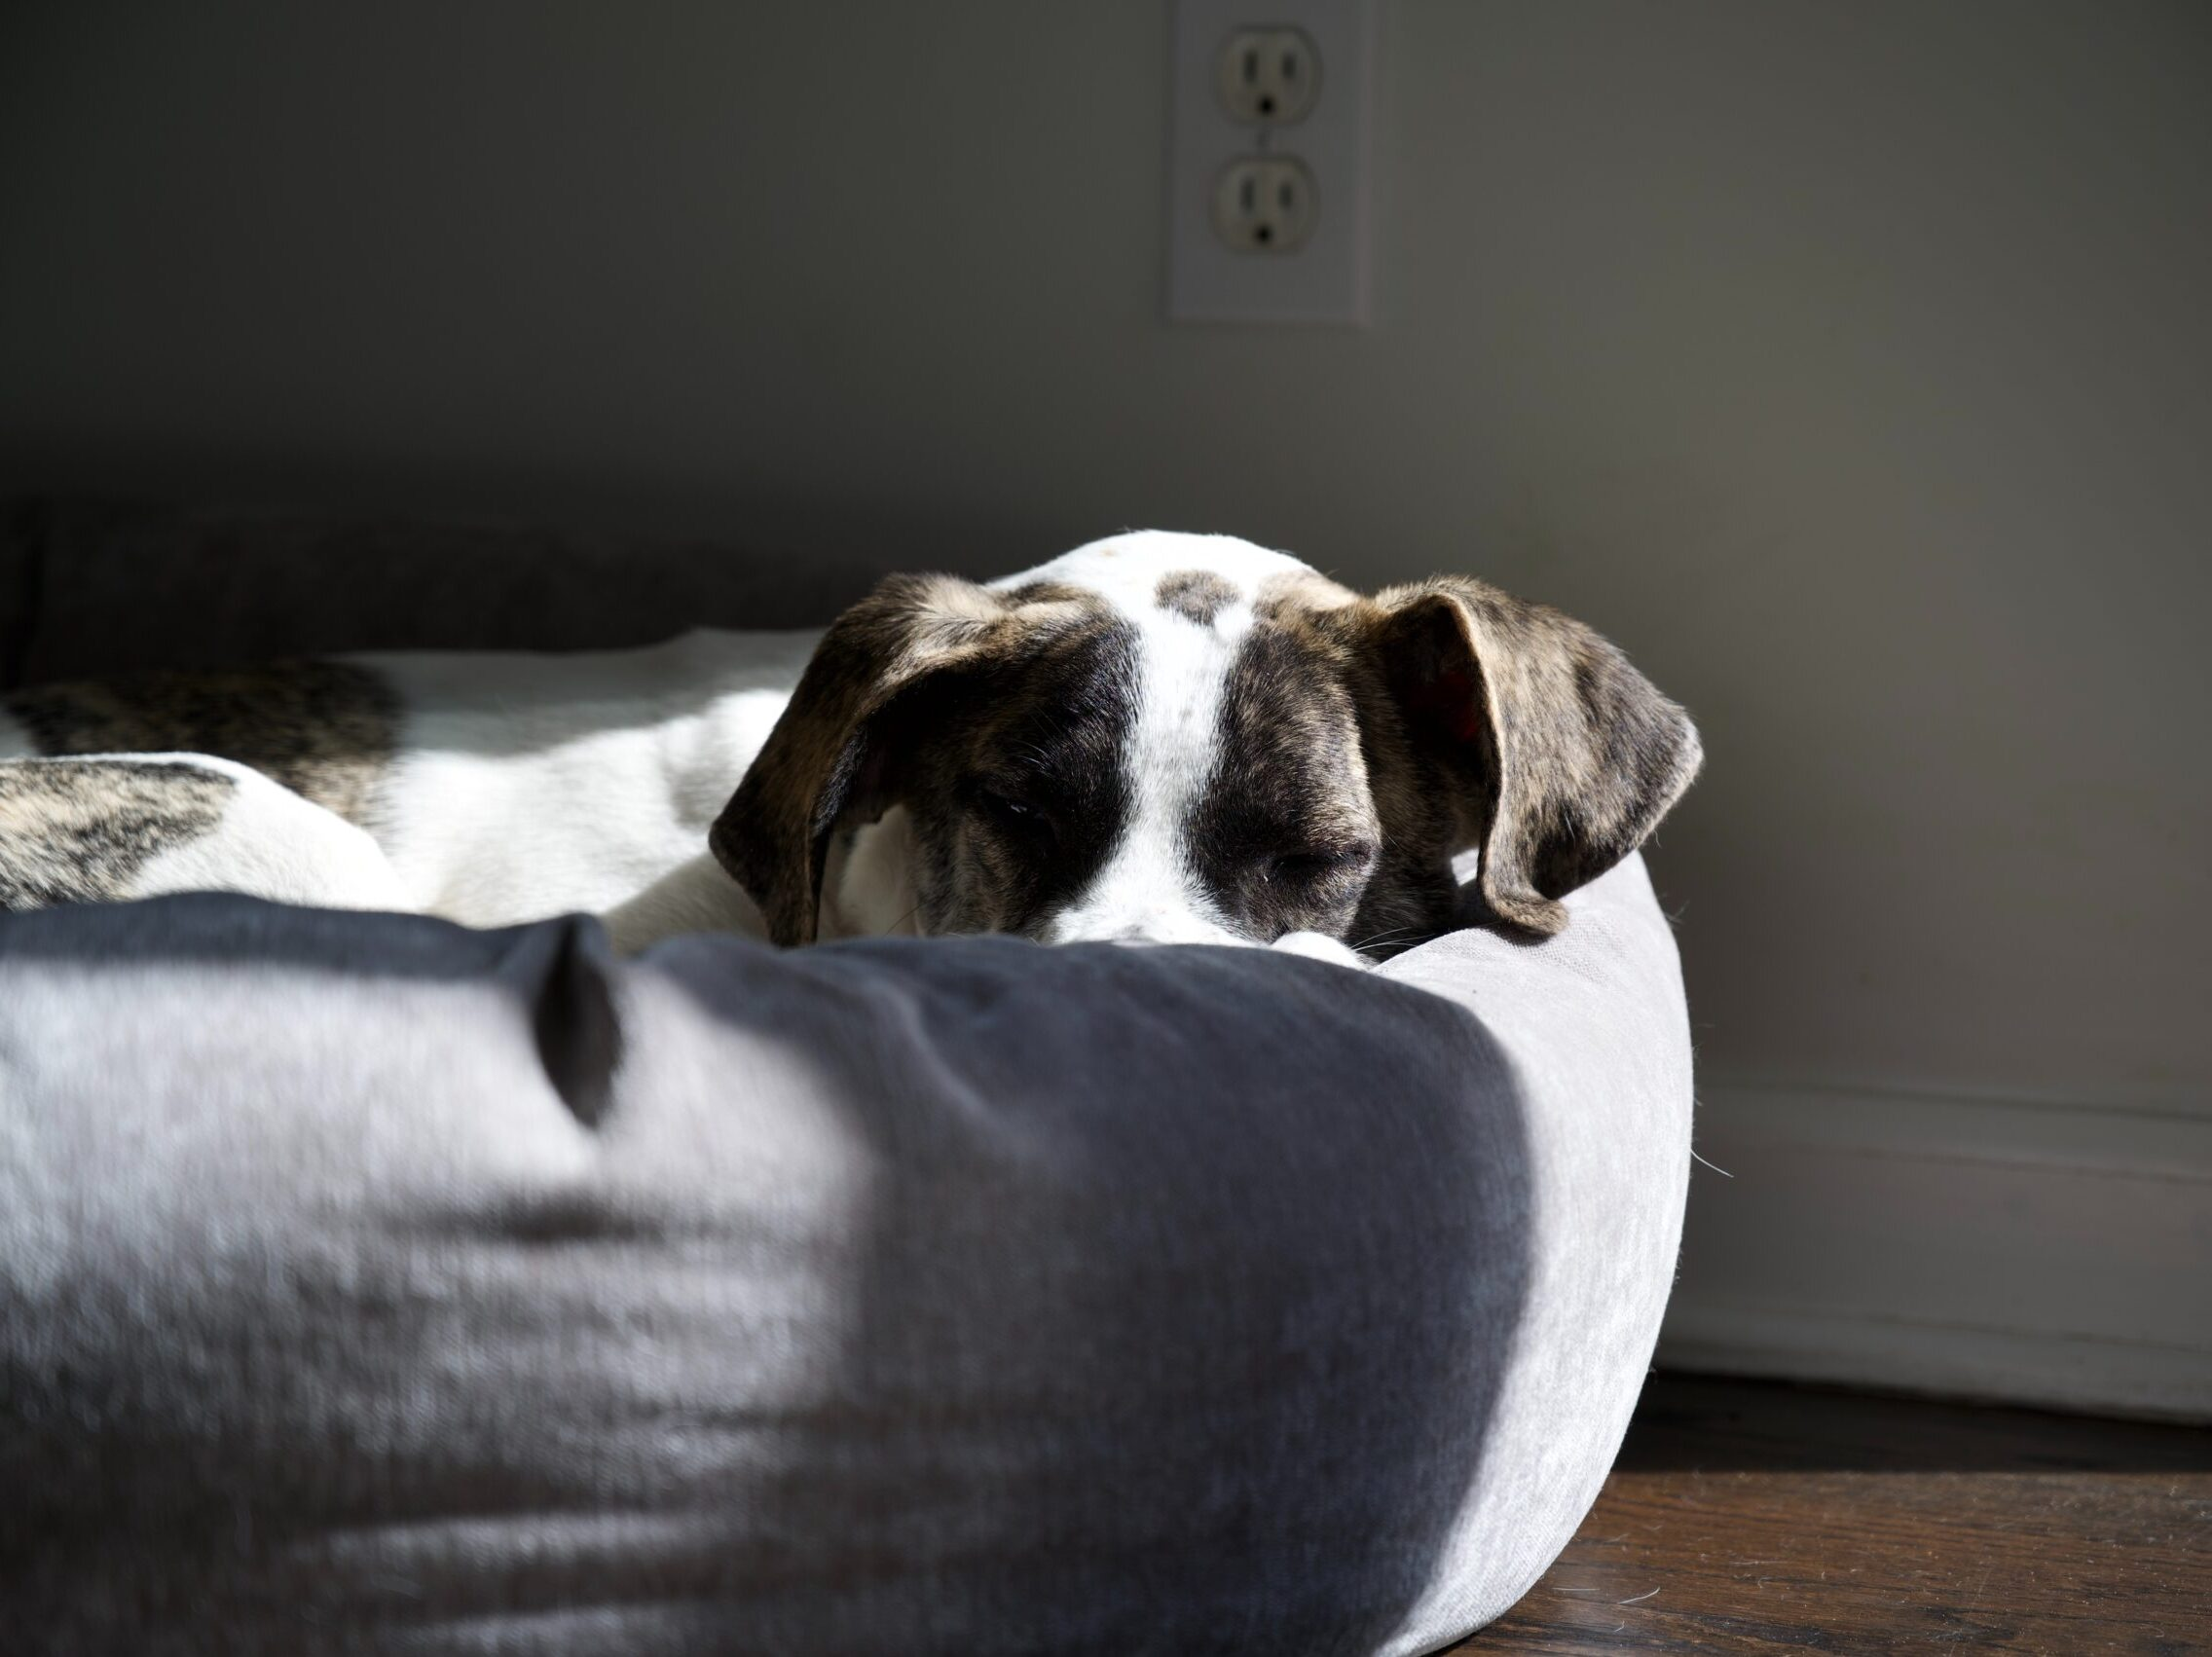 brown and white short coated dog lying on white textile